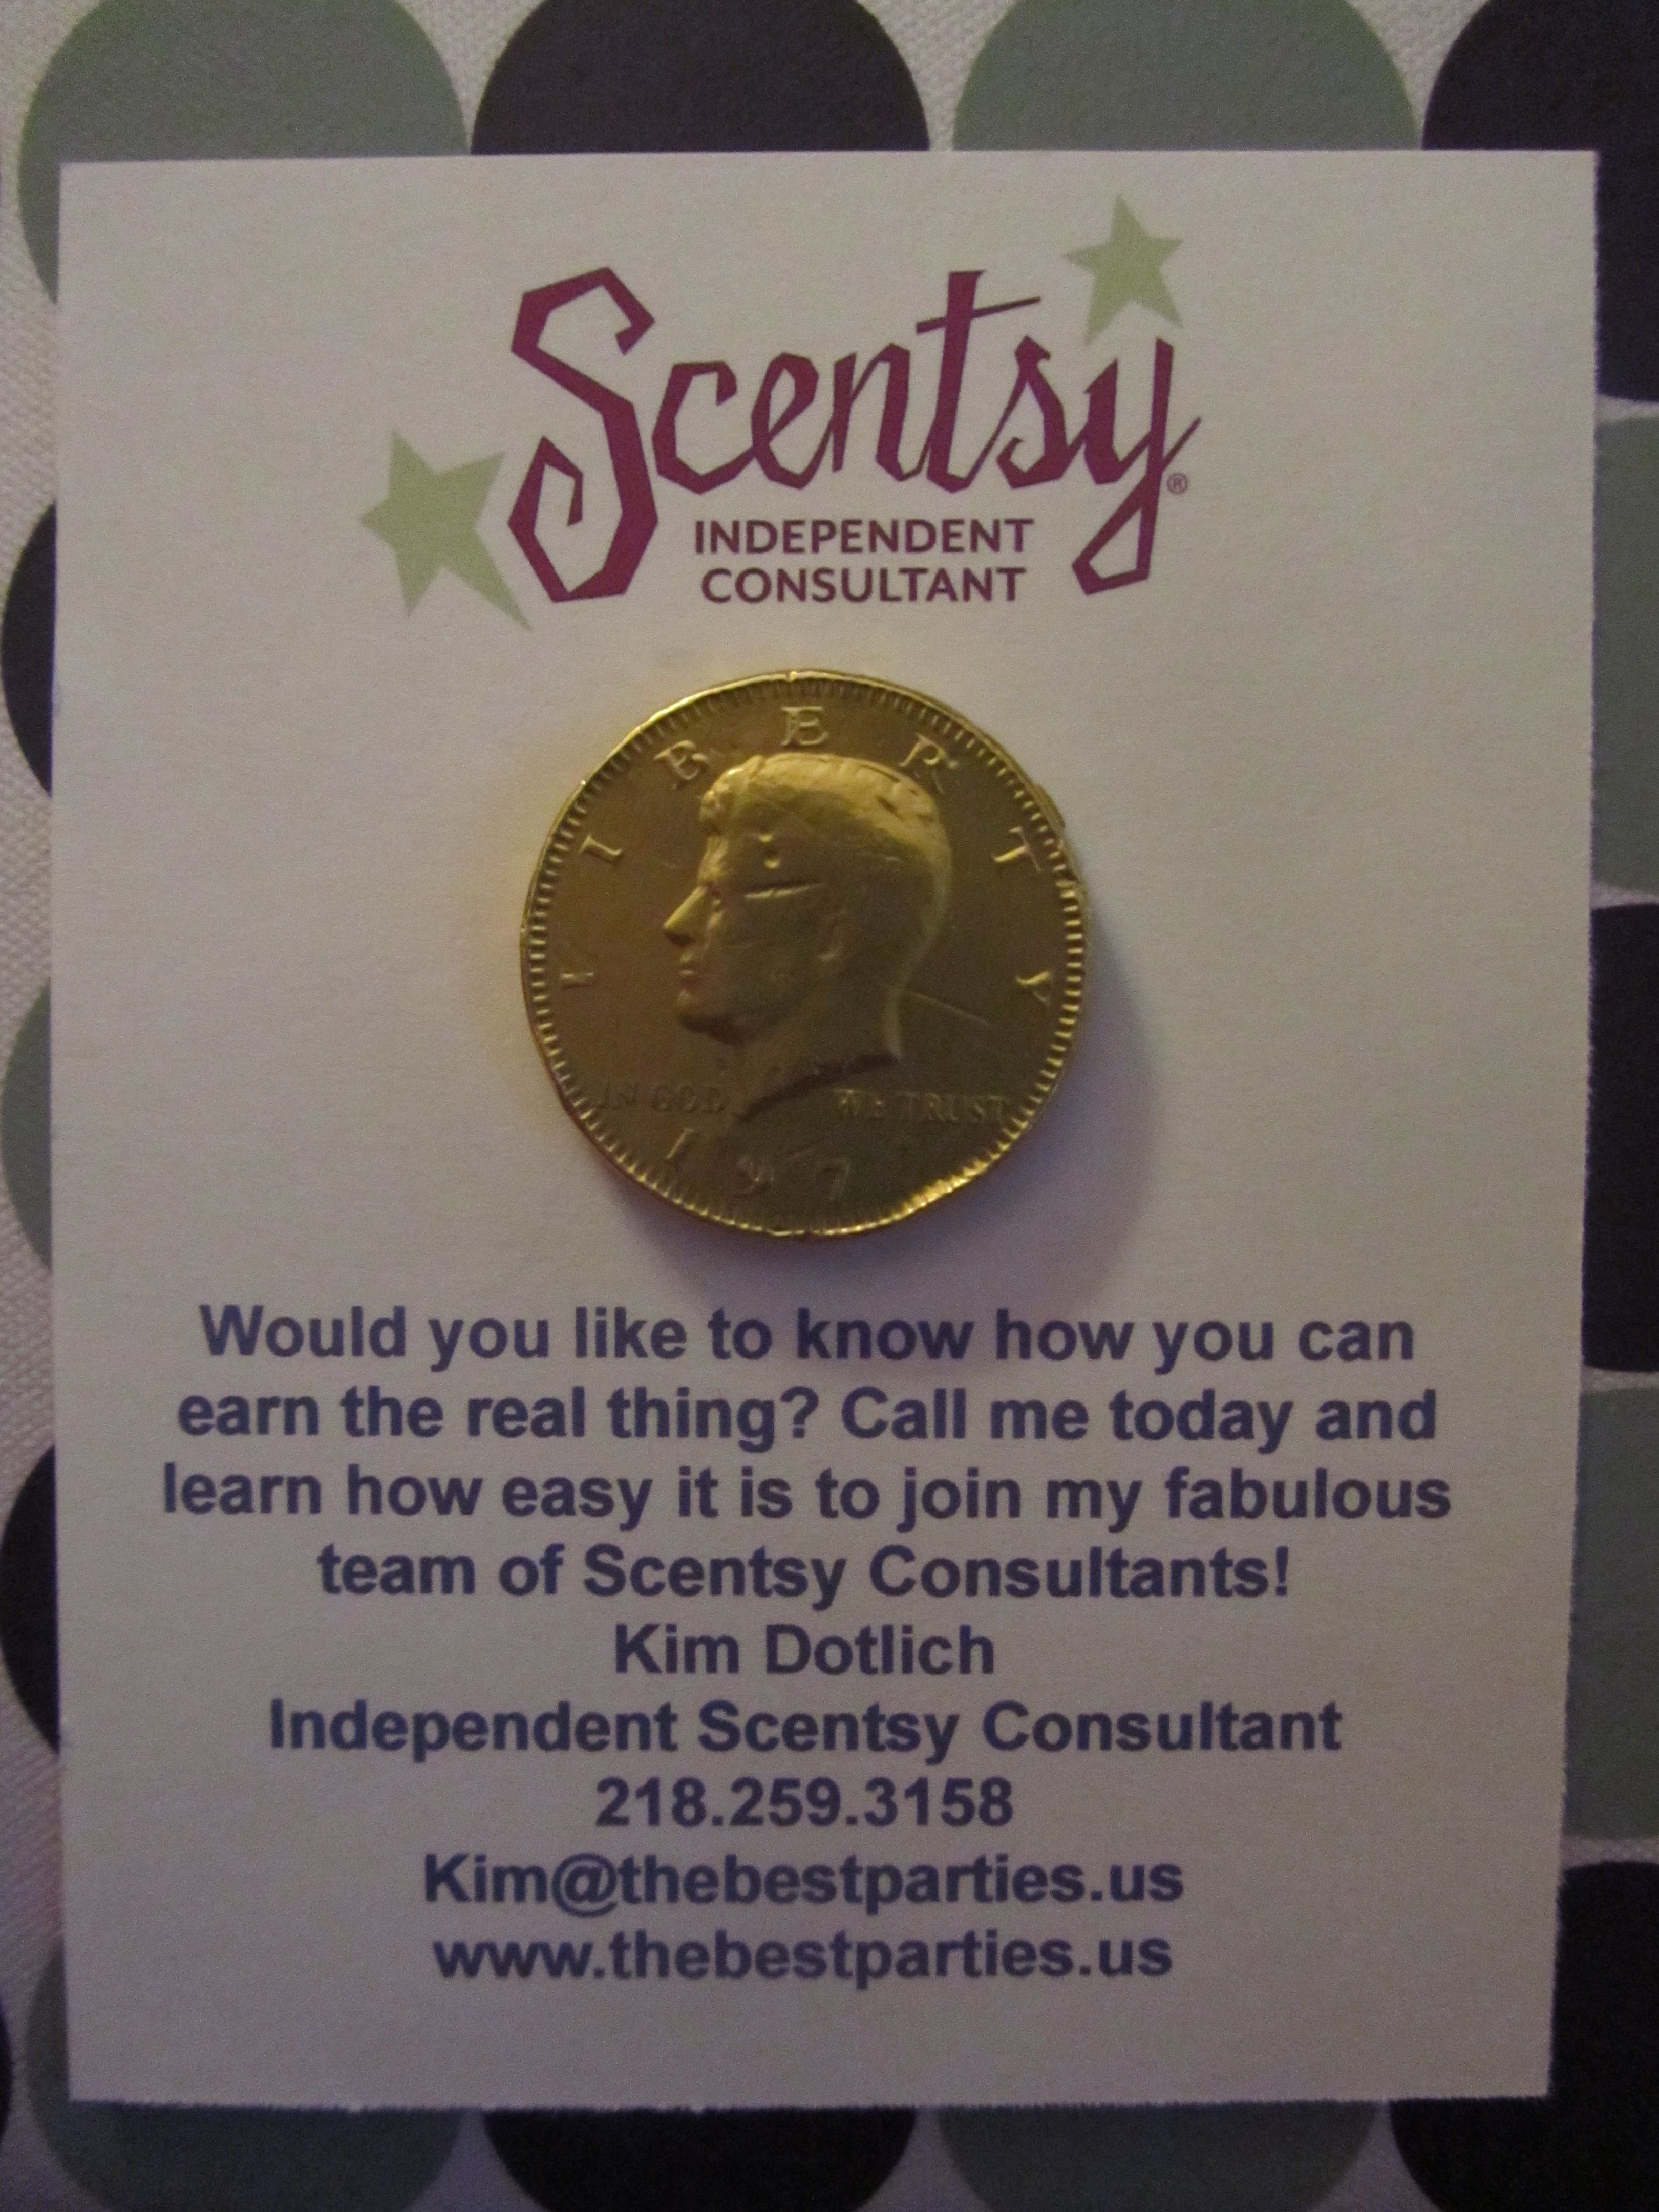 Recruiting ideas I use. | Build My Business | Pinterest | Scentsy ...